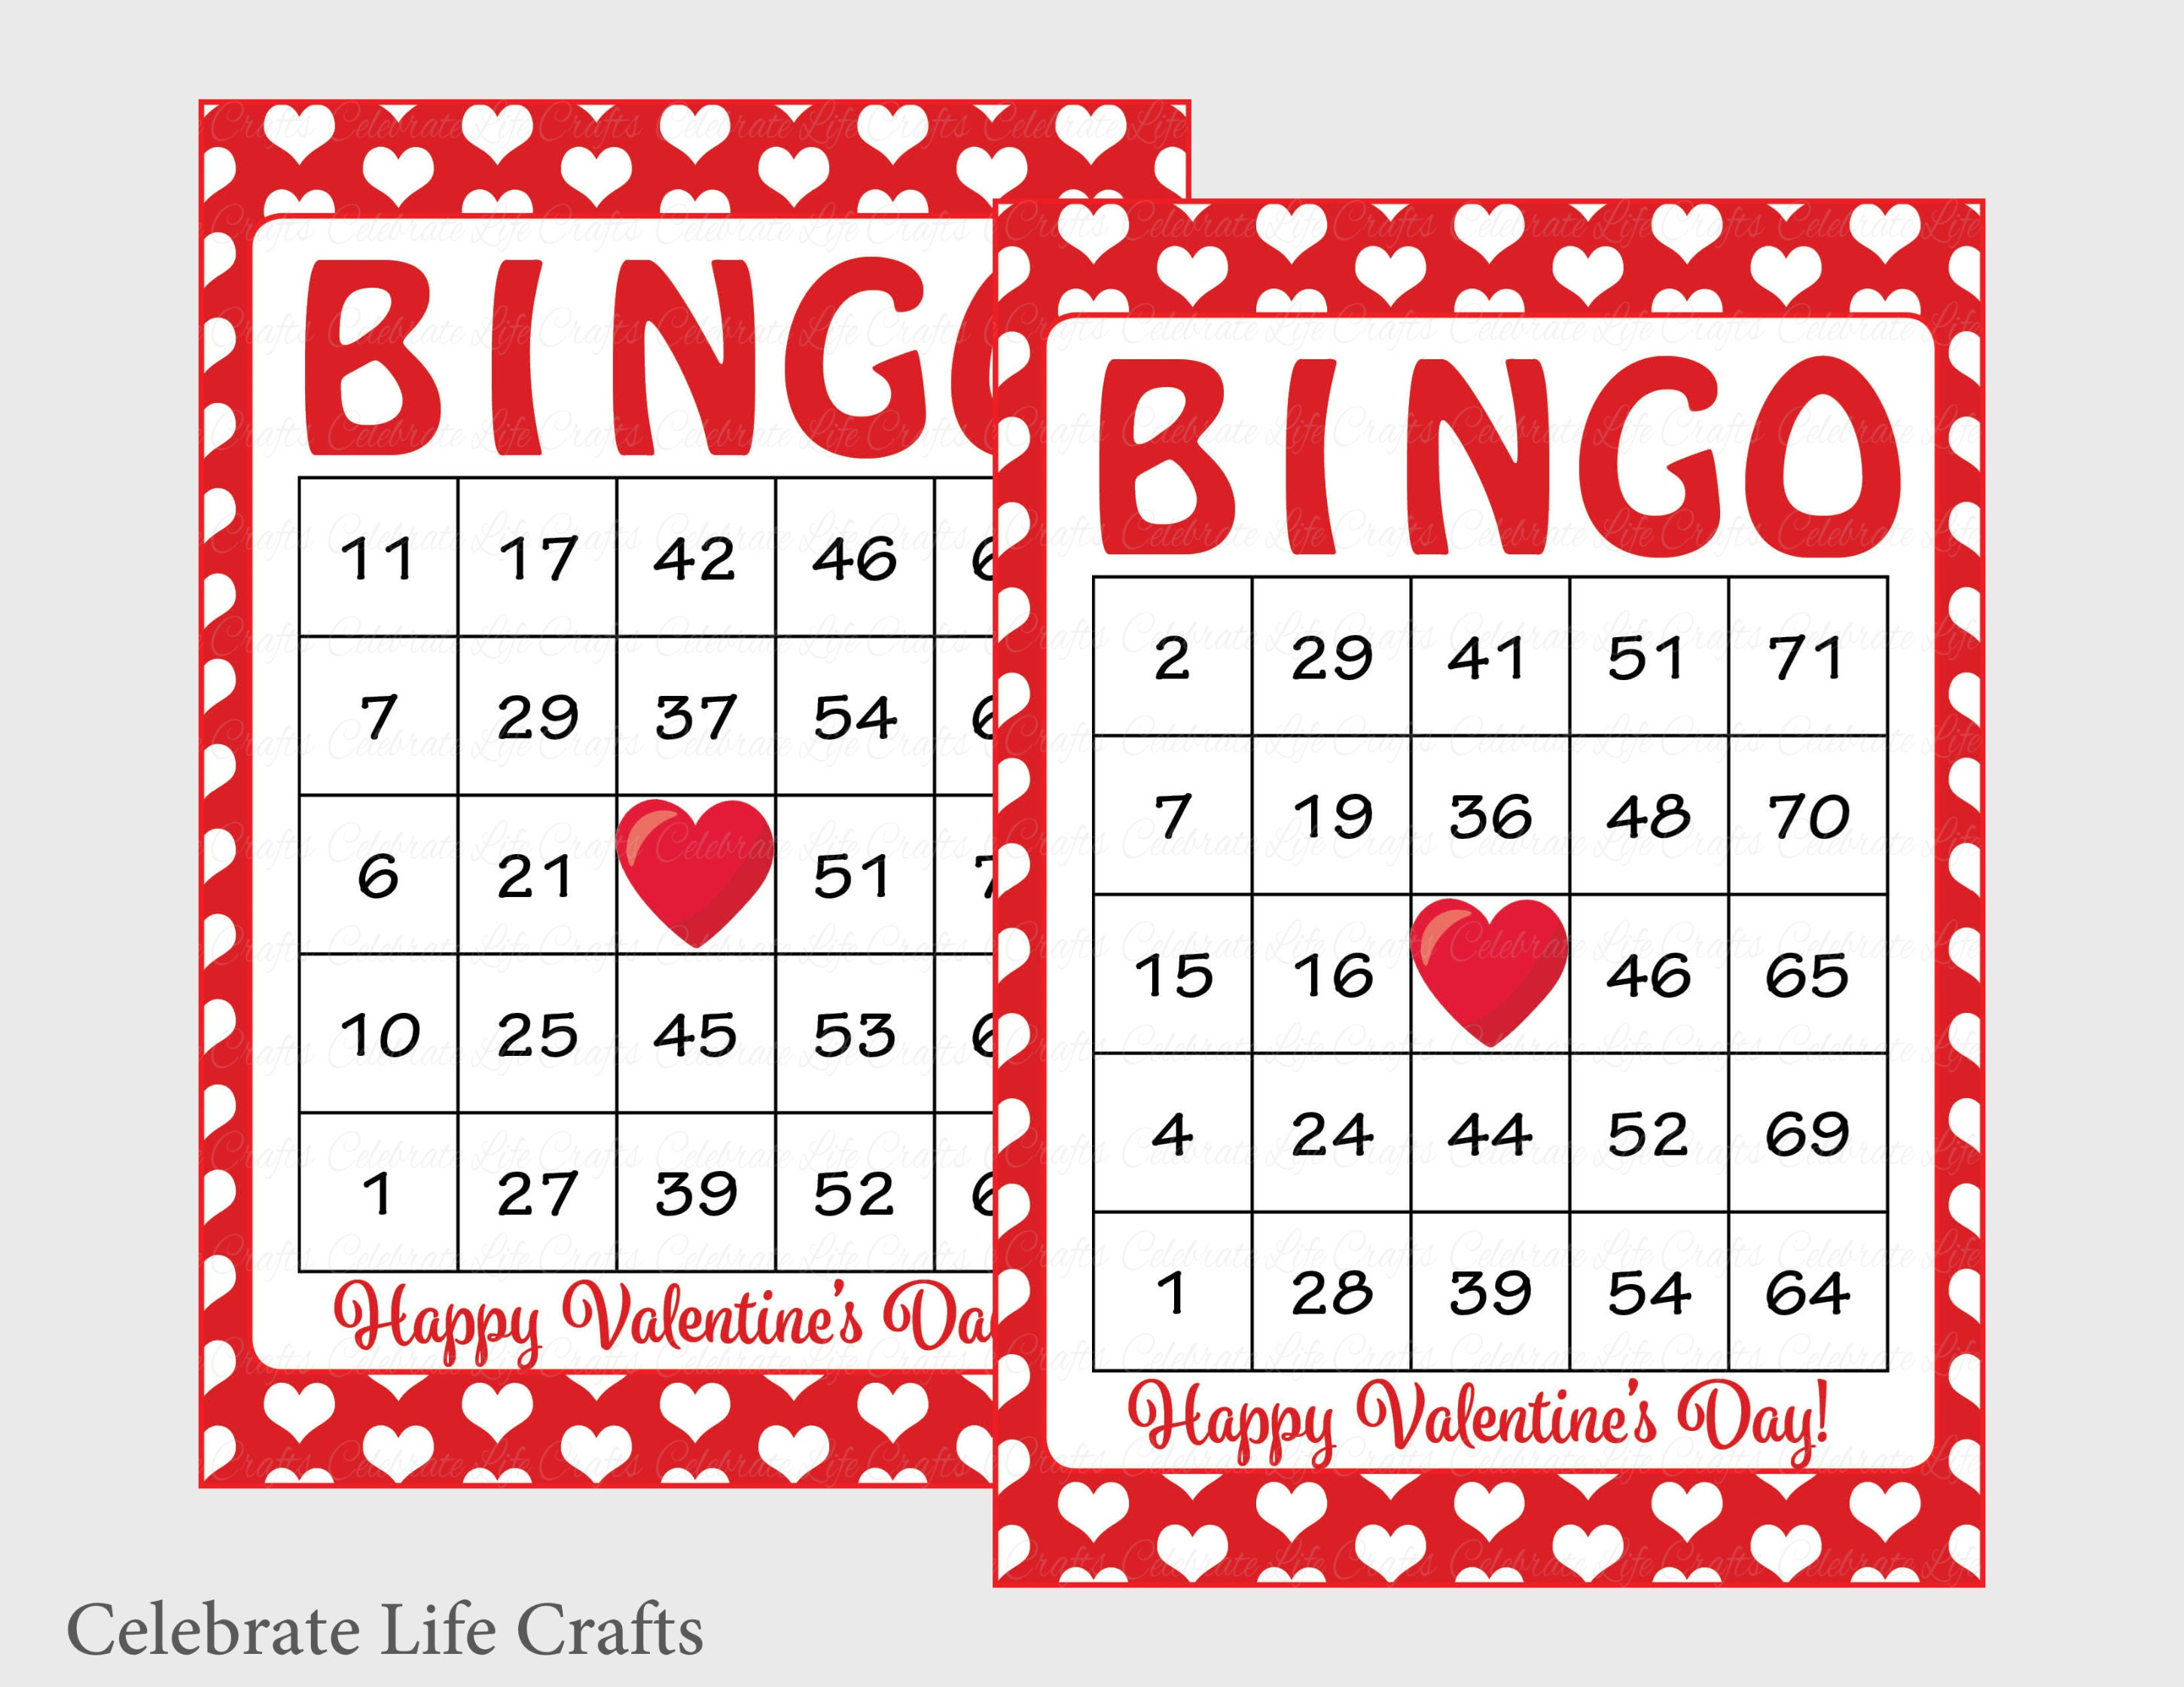 photo relating to Printable Valentine Bingo Card named 100 Valentines Bingo Playing cards - Printable Valentine Bingo Playing cards - Immediate Obtain - Valentines Working day Video game for small children - Purple White Hearts - V1005